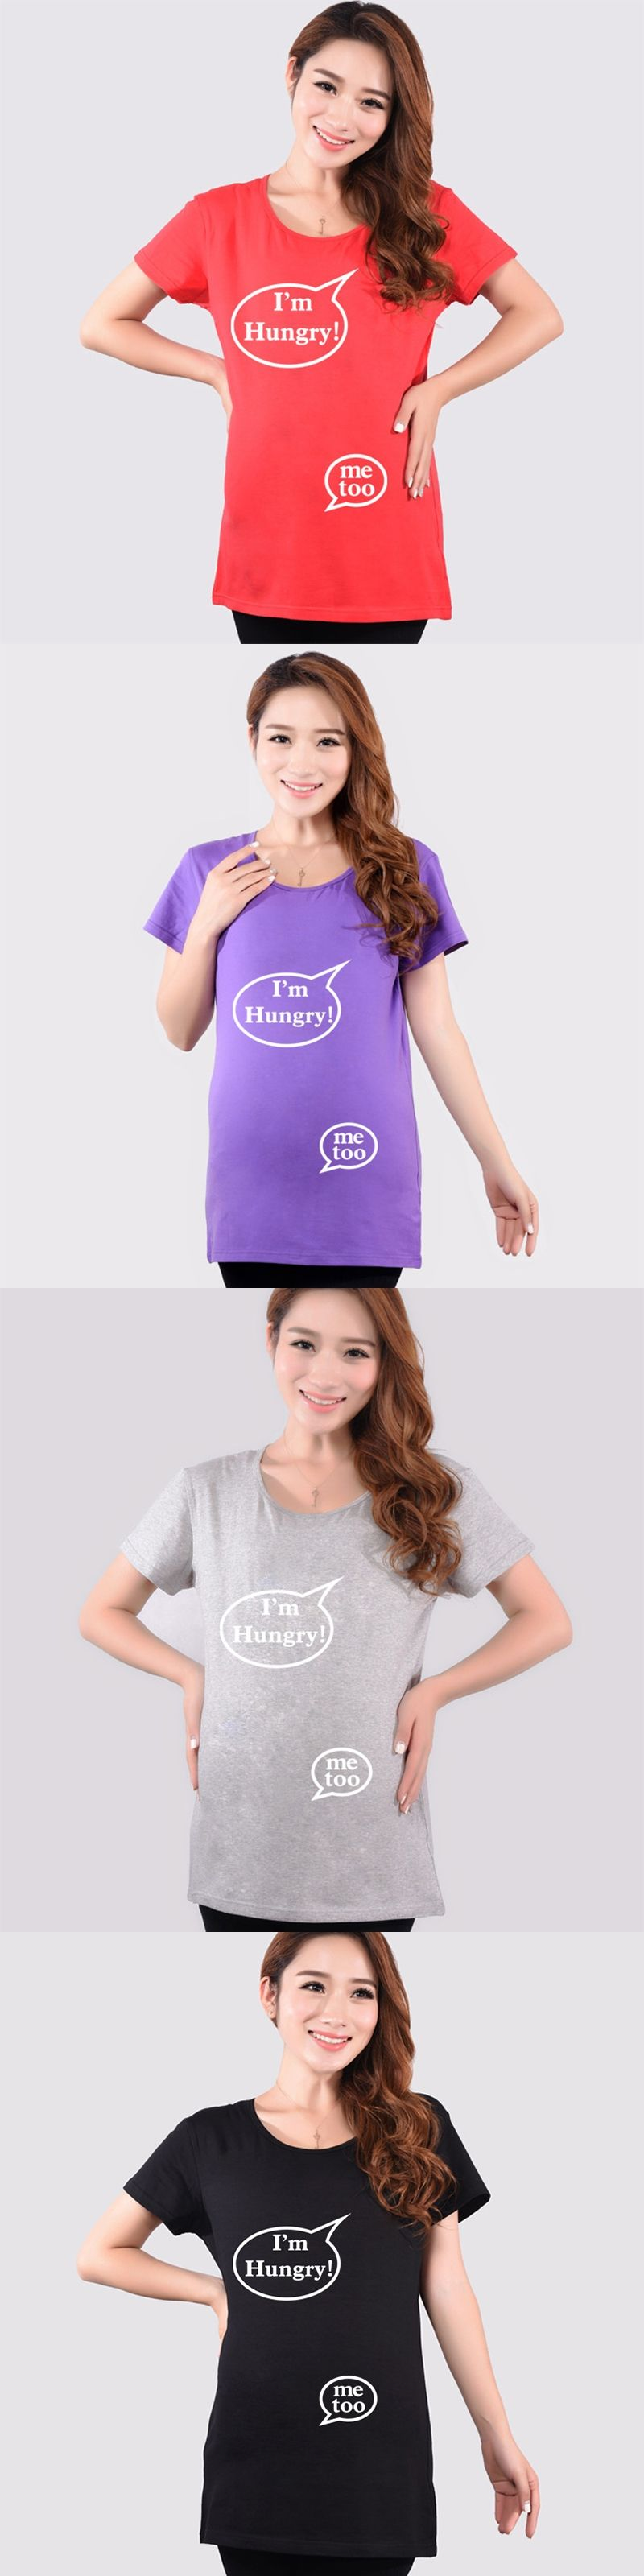 ce76cf9c26f Funny maternity tops soft cotton summer pregnancy shirts maternity clothes  for pregnant women 4color short sleeve